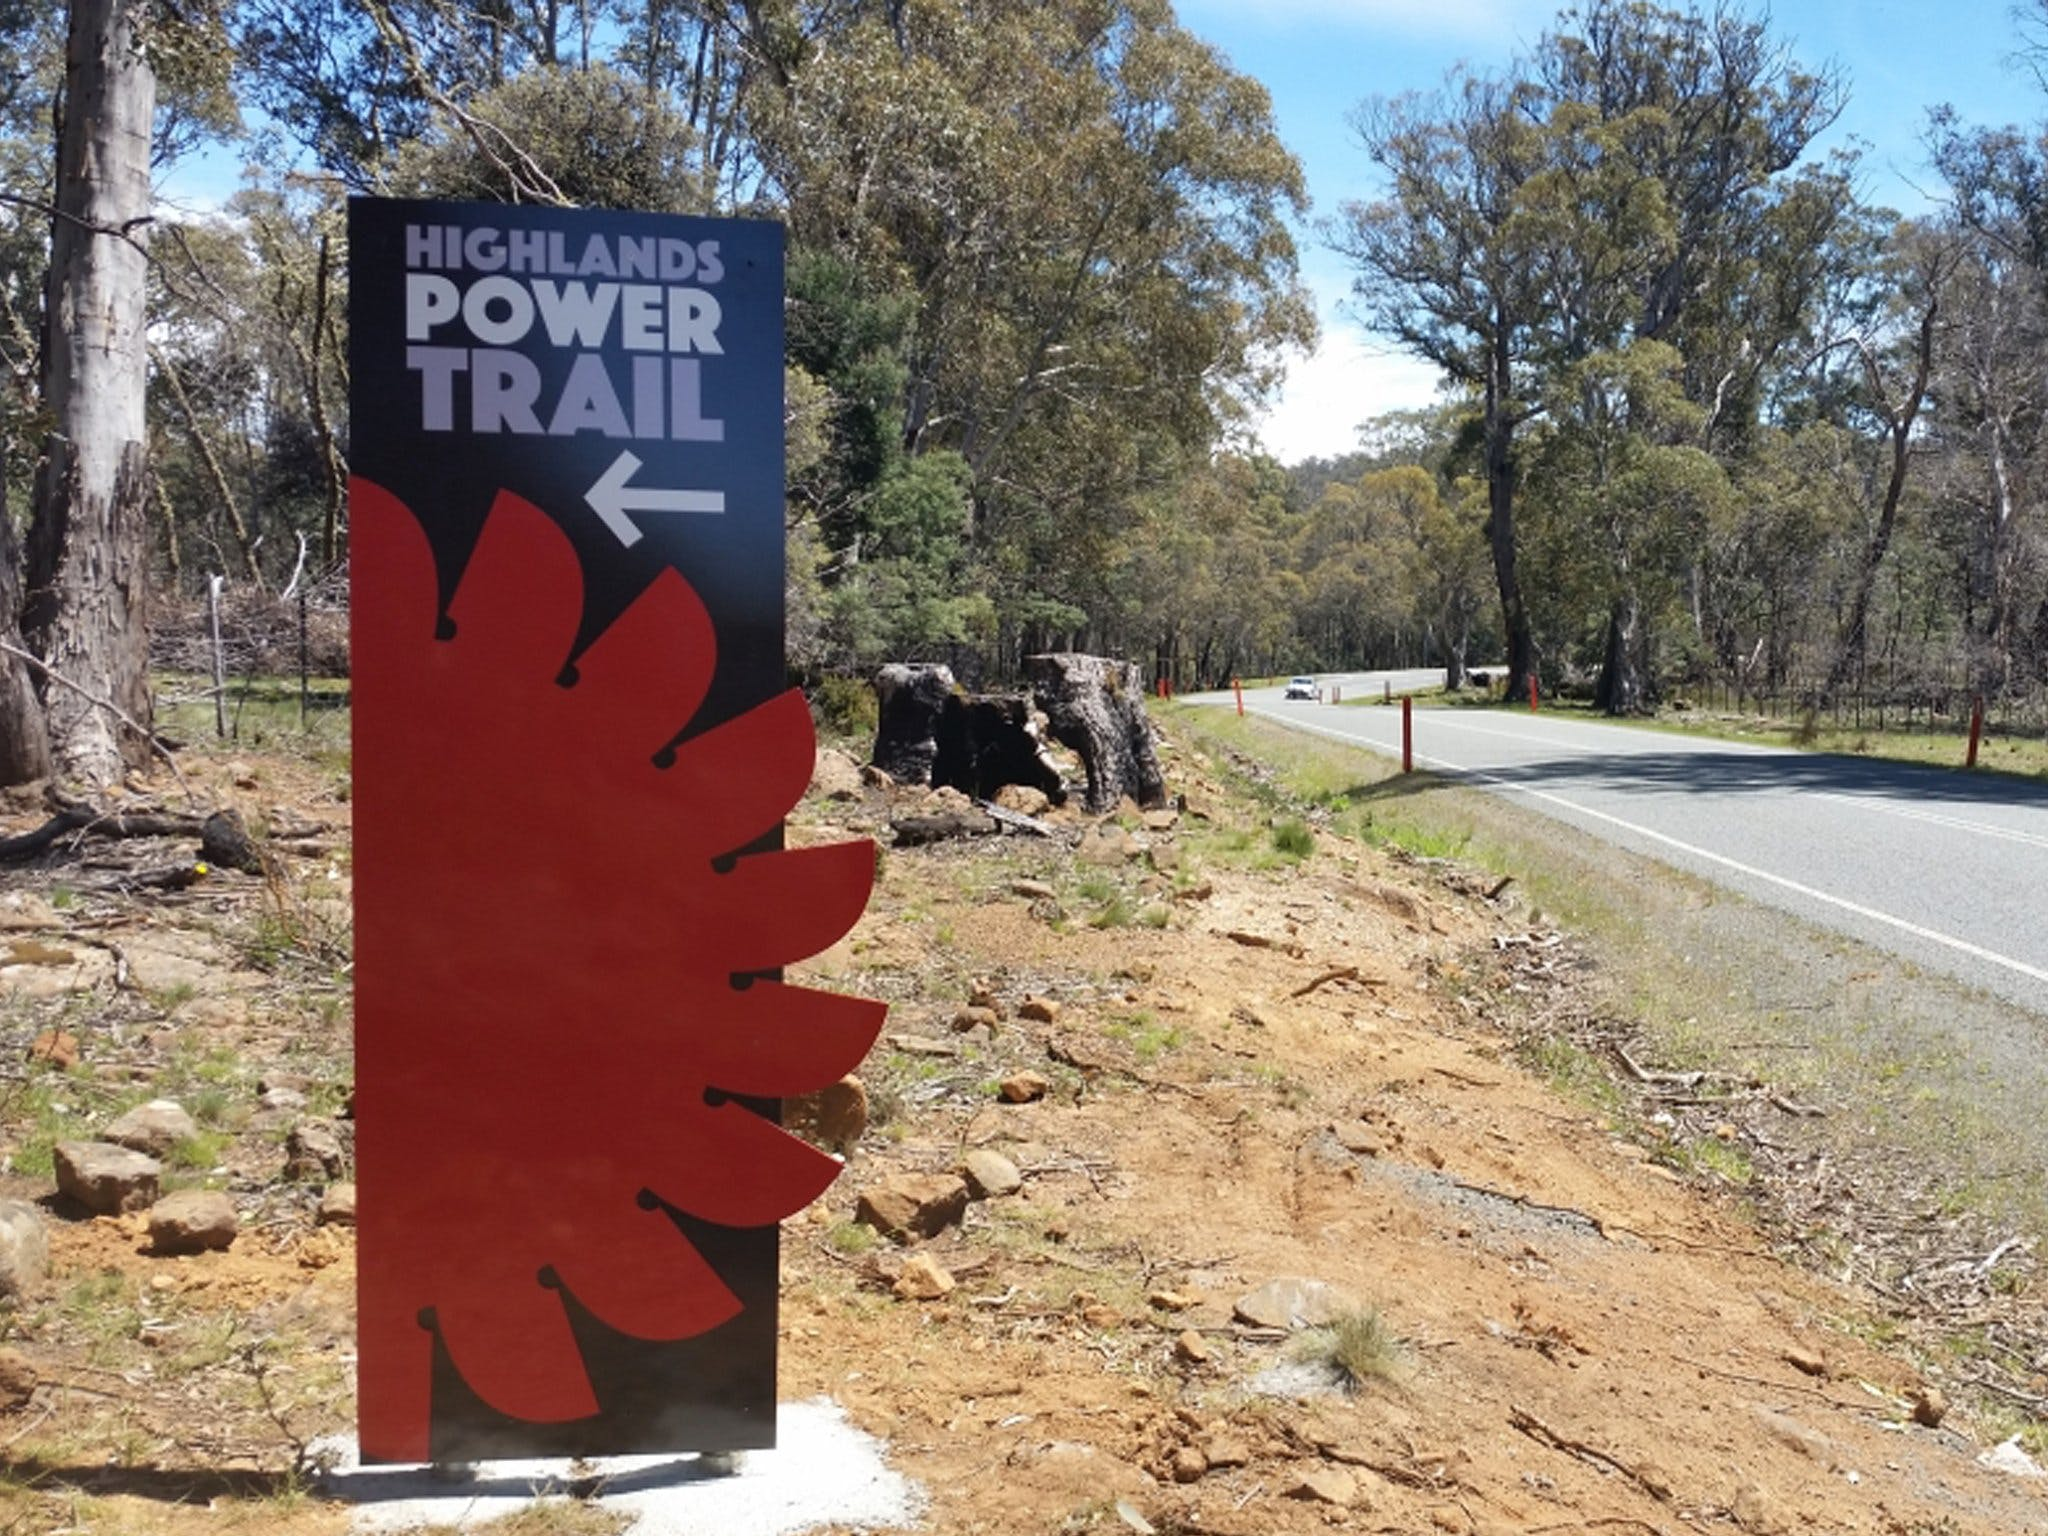 Highlands Power Trail - Accommodation Adelaide